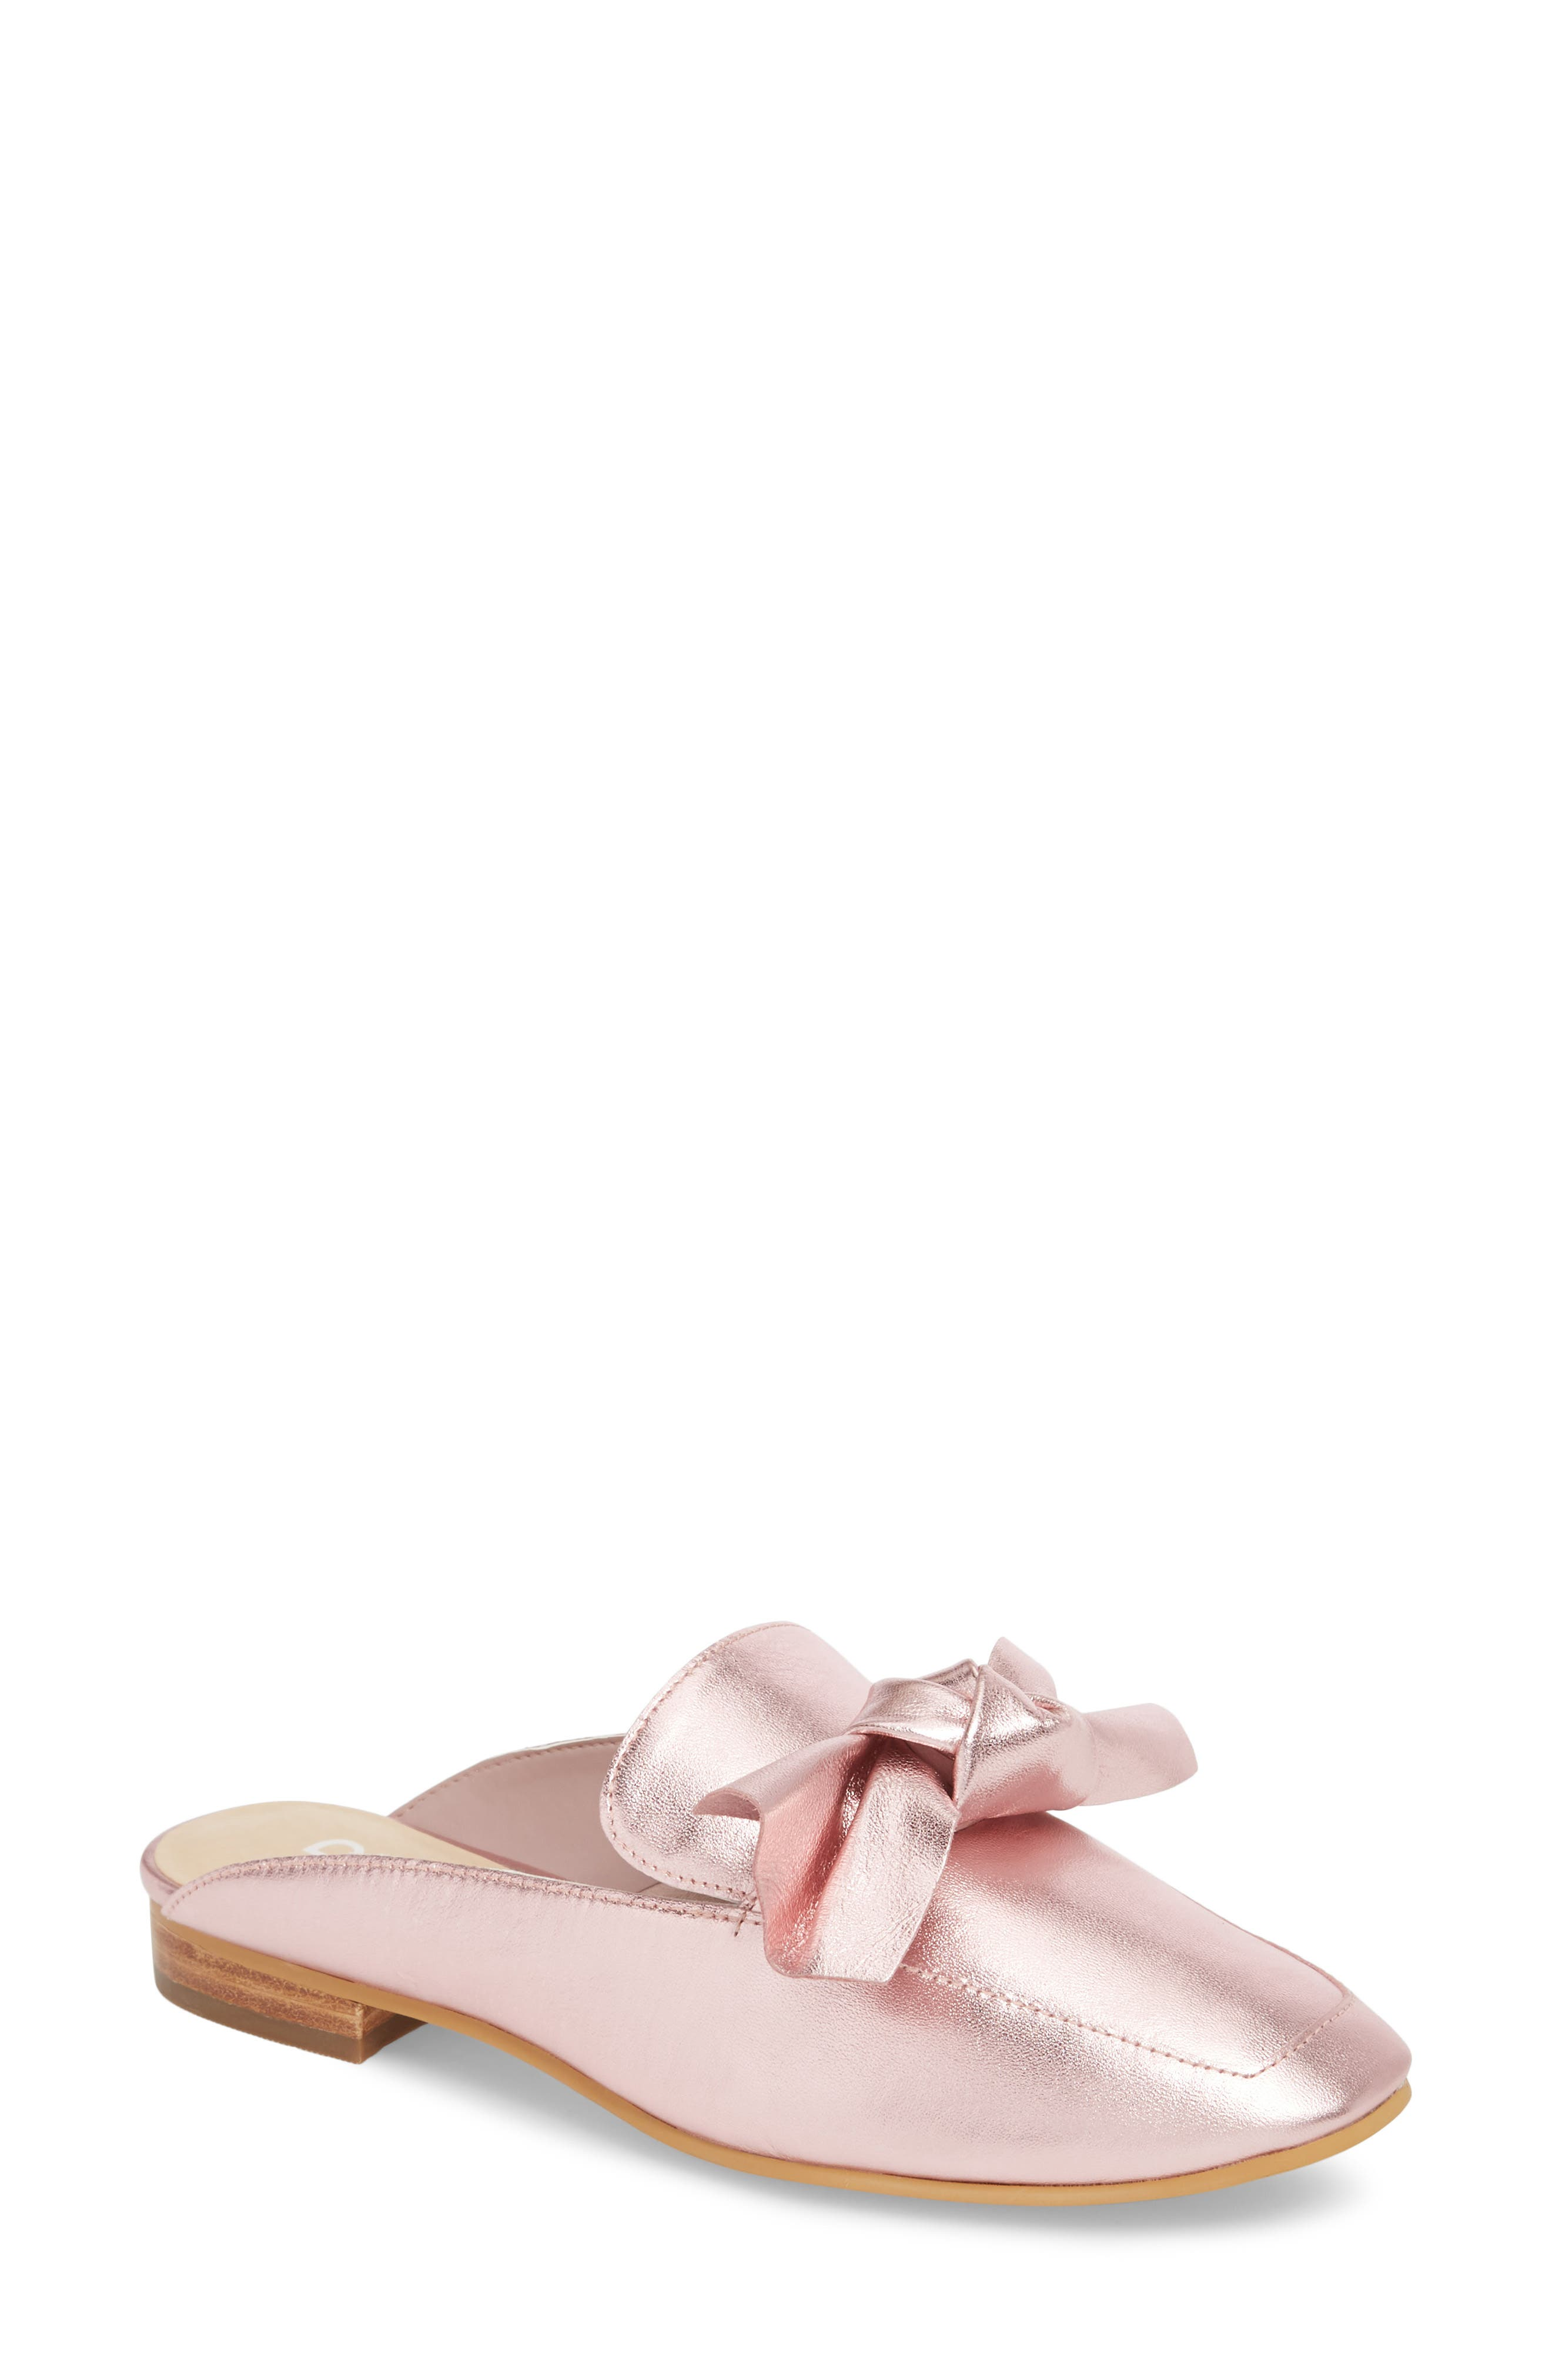 Sandals for Women On Sale, Dusty Pink, Leather, 2017, 3.5 4.5 5.5 Ancient Greek Sandals